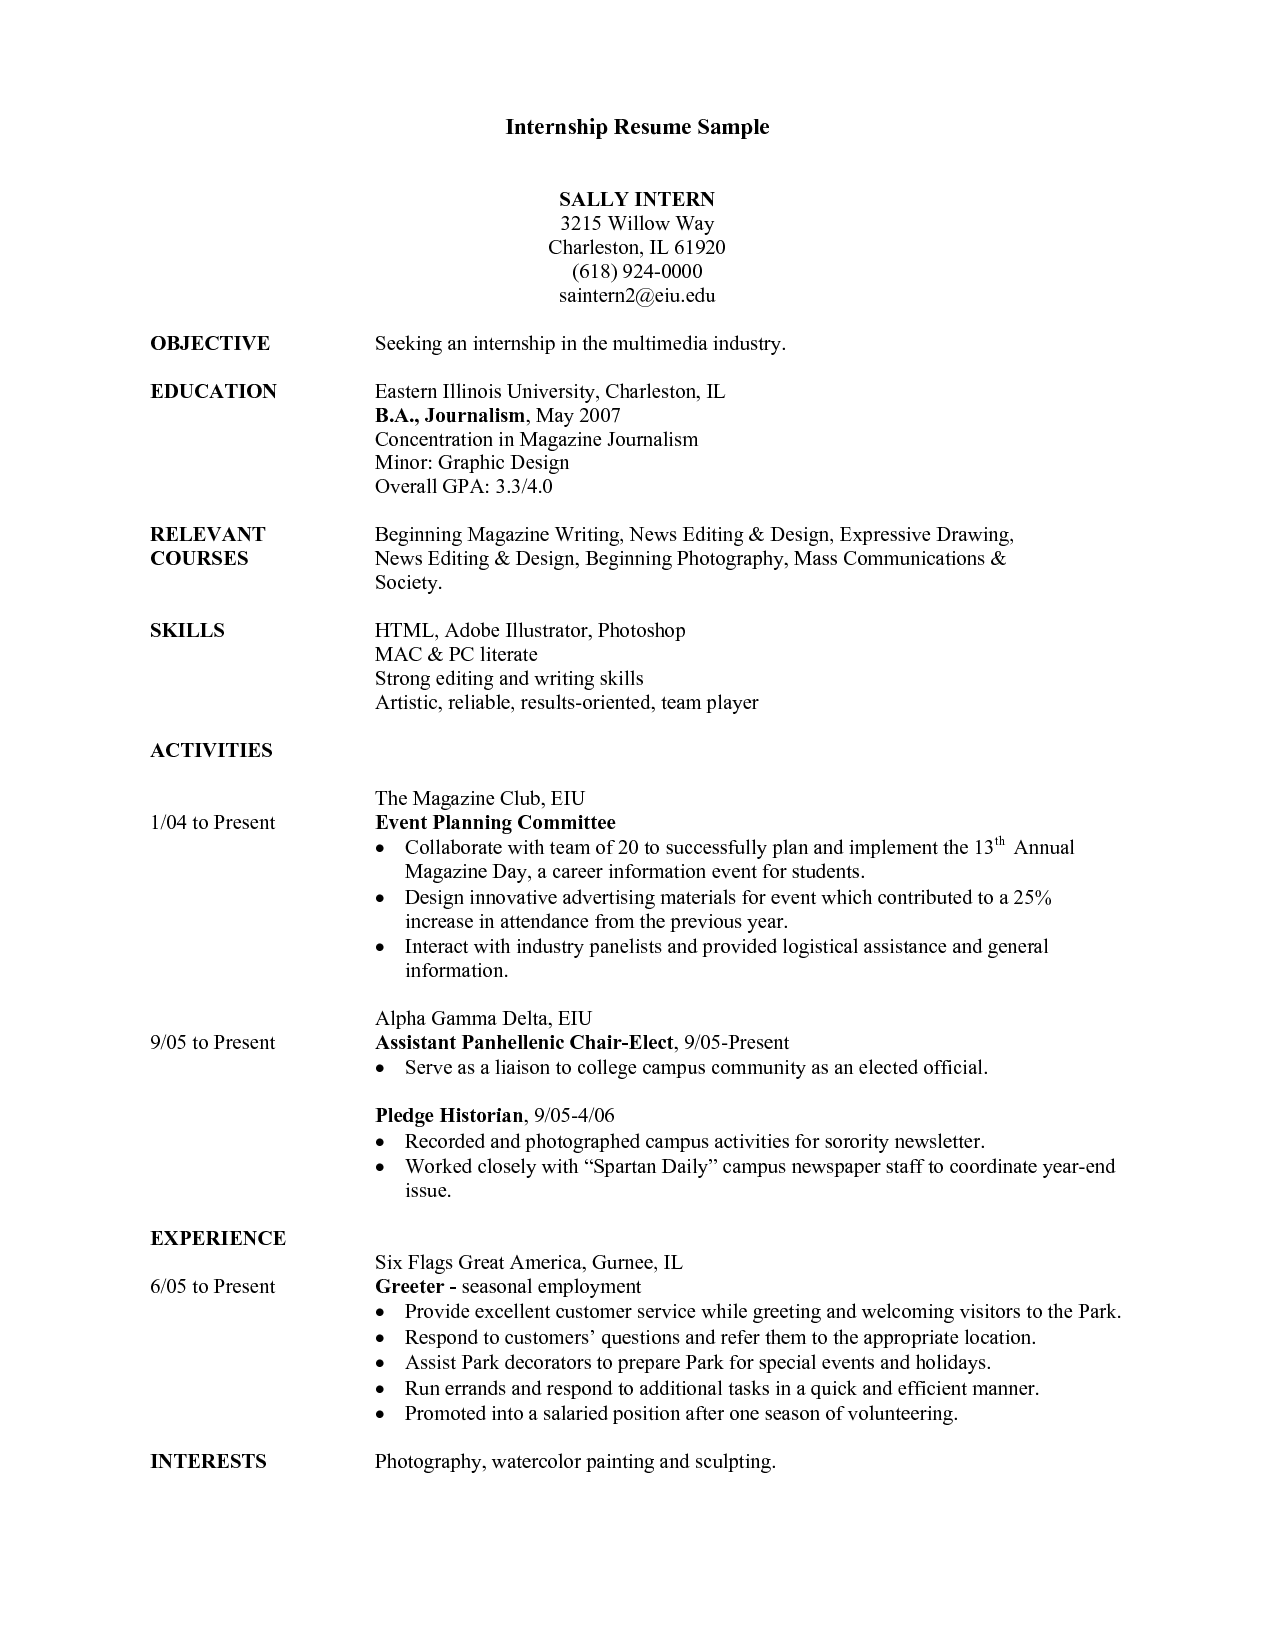 Student Resume Example Sample College Internship Samples Students Student  Resume Example Sample College Internship Samples Students